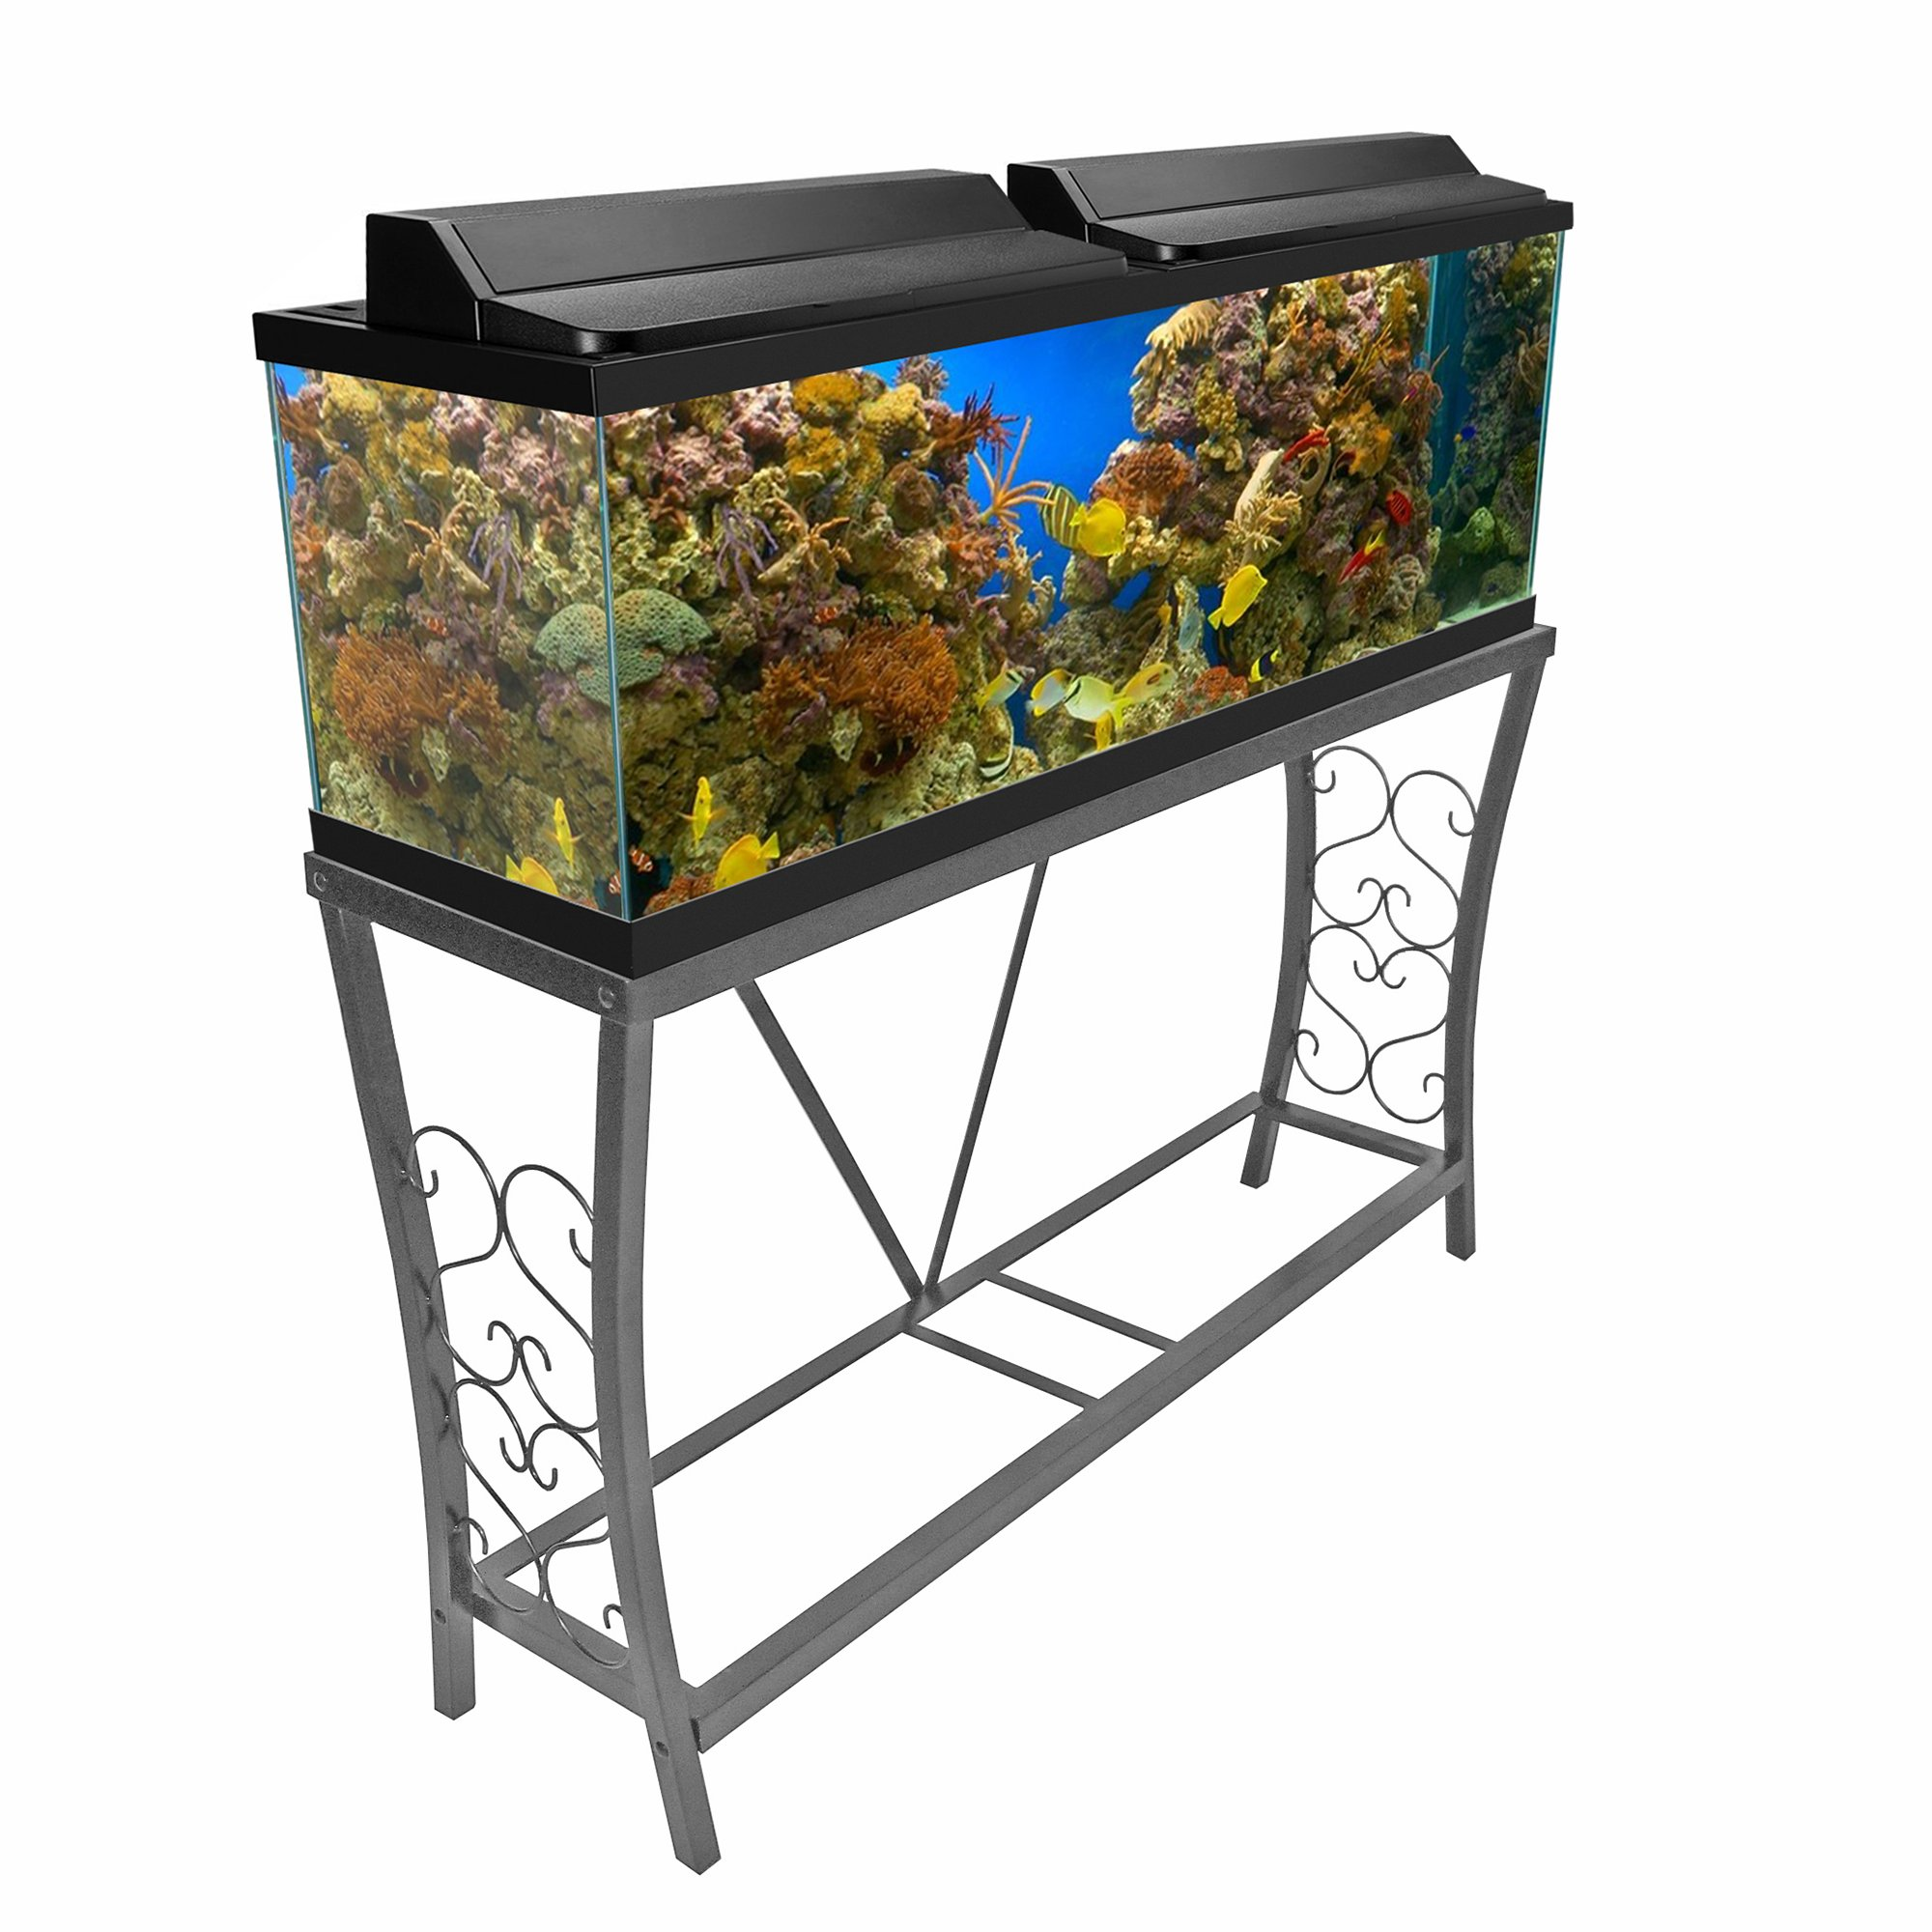 Aquatic fundamentals silver vein scroll aquarium stand 55 for 55 gallon fish tank stand